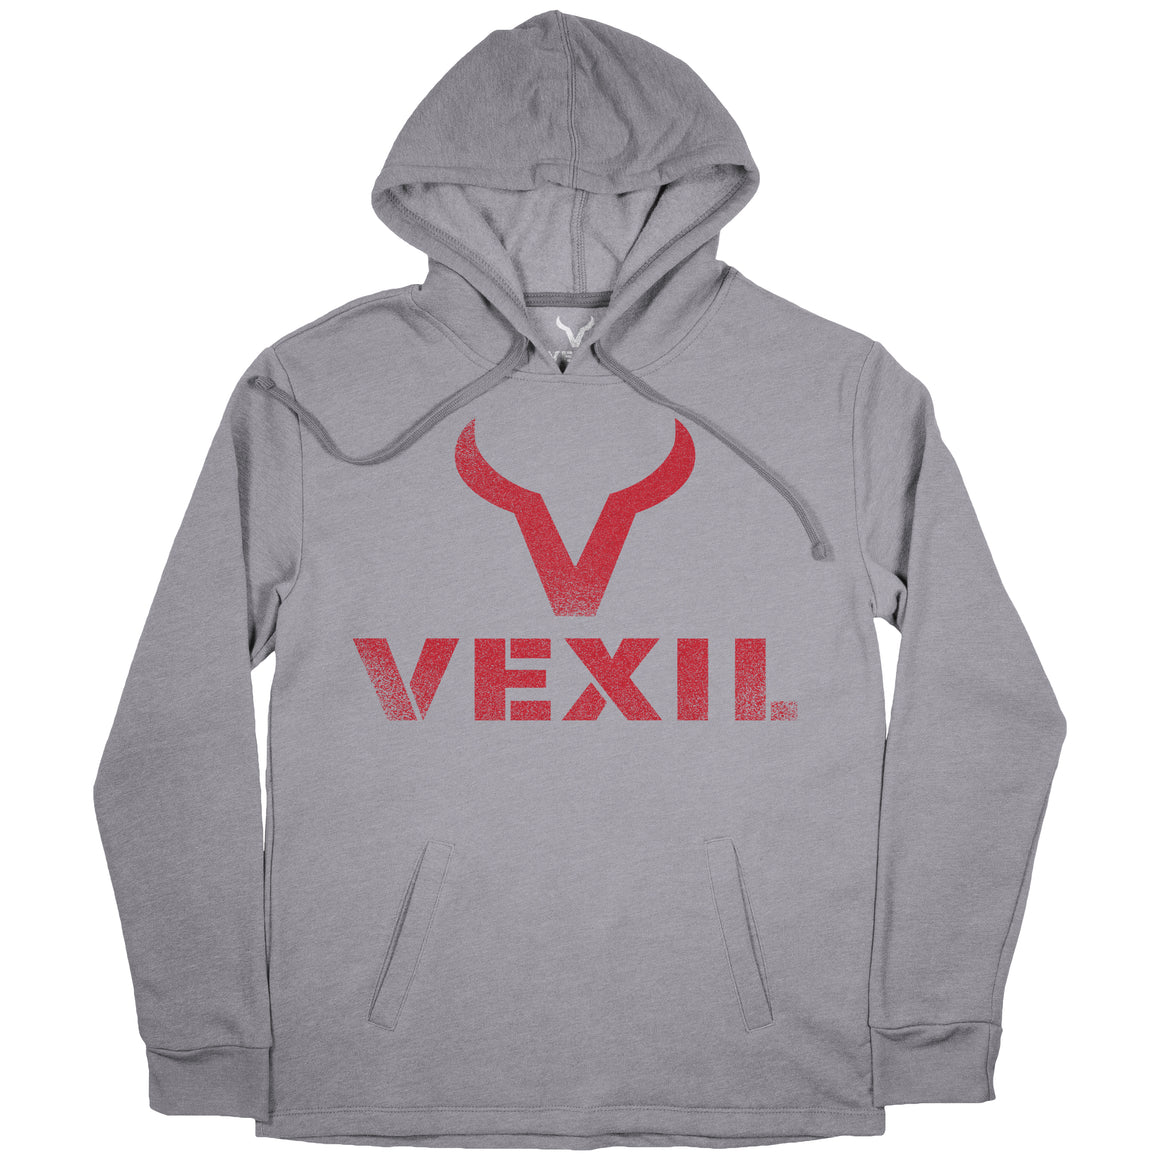 Vexil Brand - Hoodie - Distressed Logo - Heather Grey